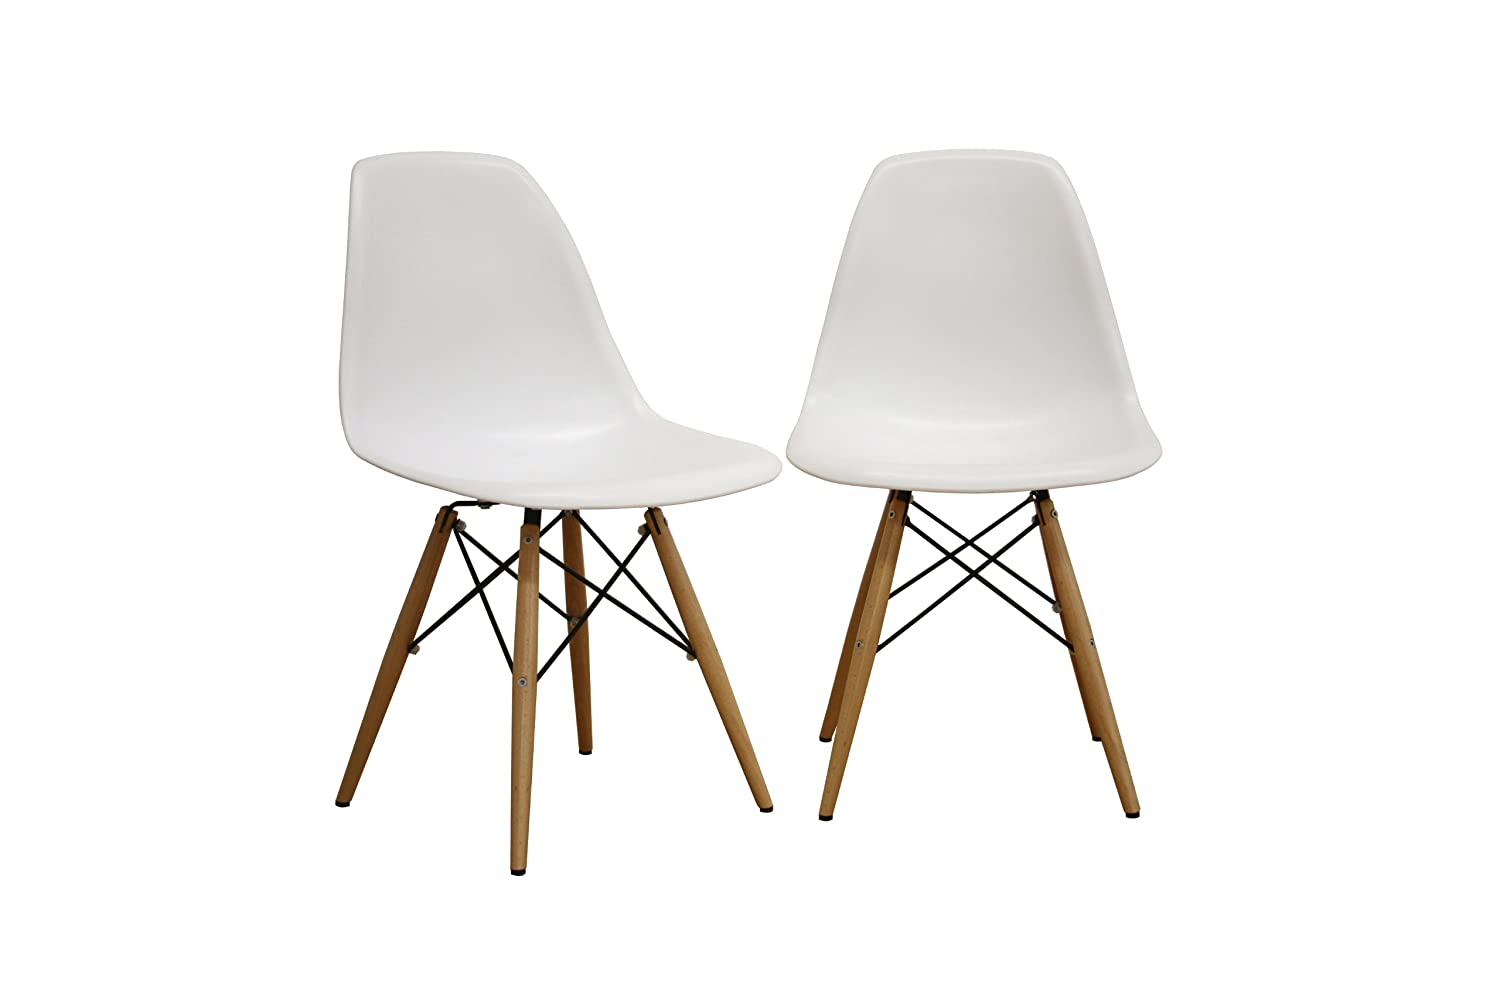 Eames chair white plastic - Amazon Com Baxton Studio Lac Plastic Side Chair Set Of 2 Kitchen Dining